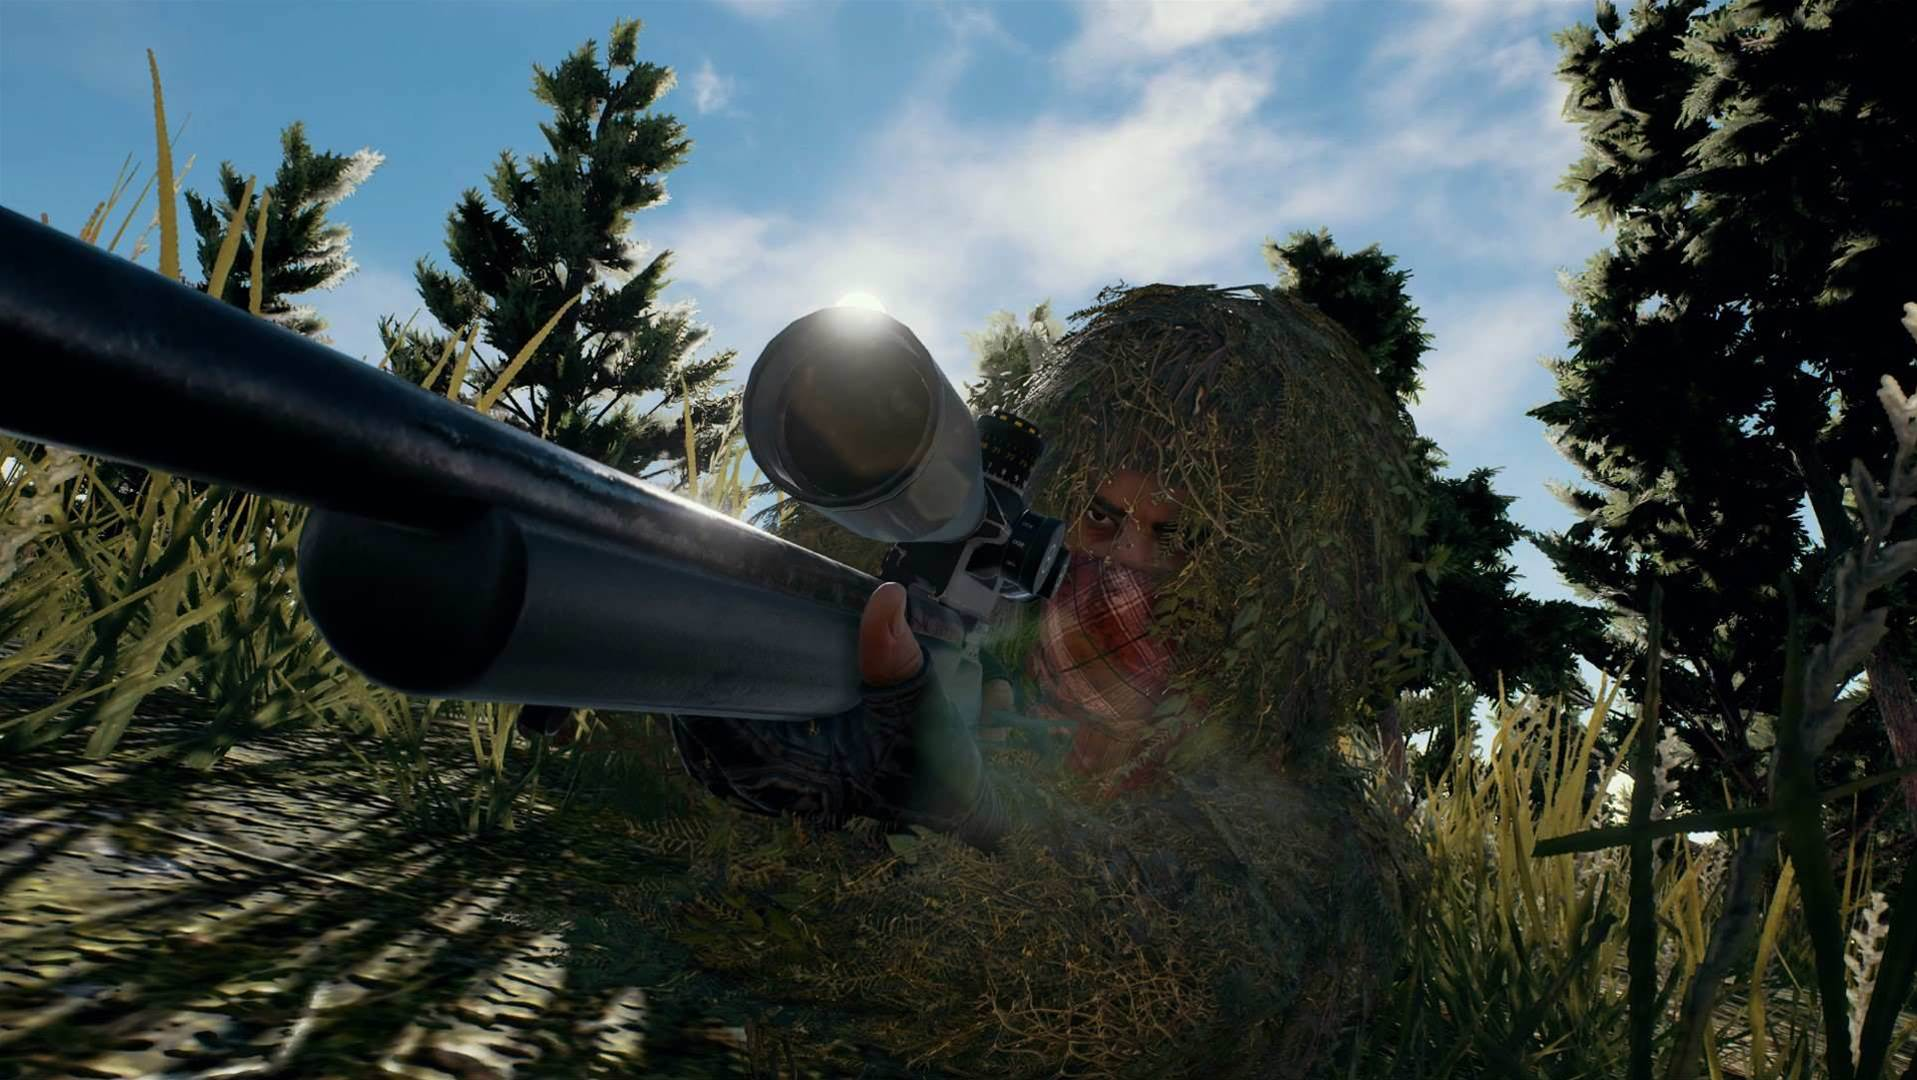 Battling screenshots for Playerunknown's Battlegrounds